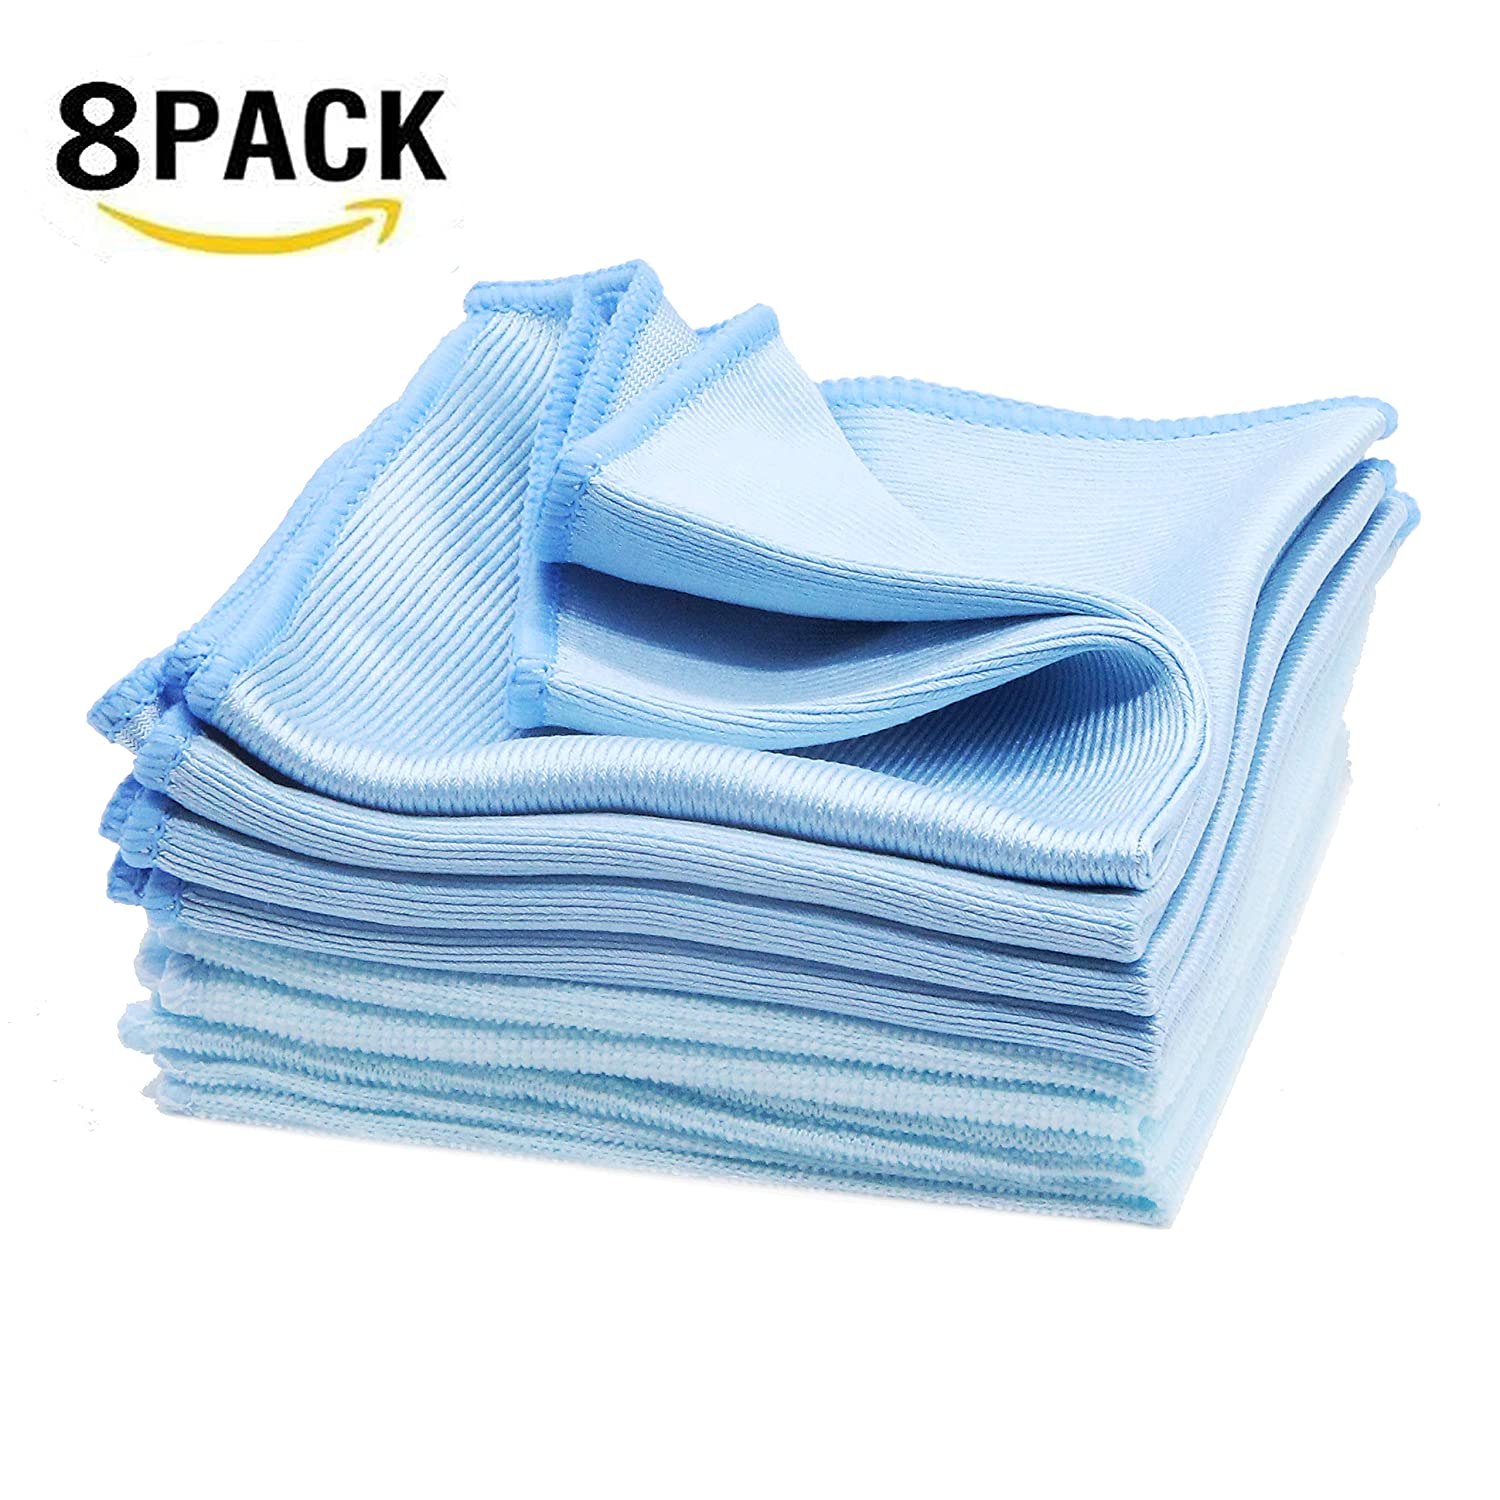 1e55970866c Amazon.com  8 Pack Glass Cleaning Cloths